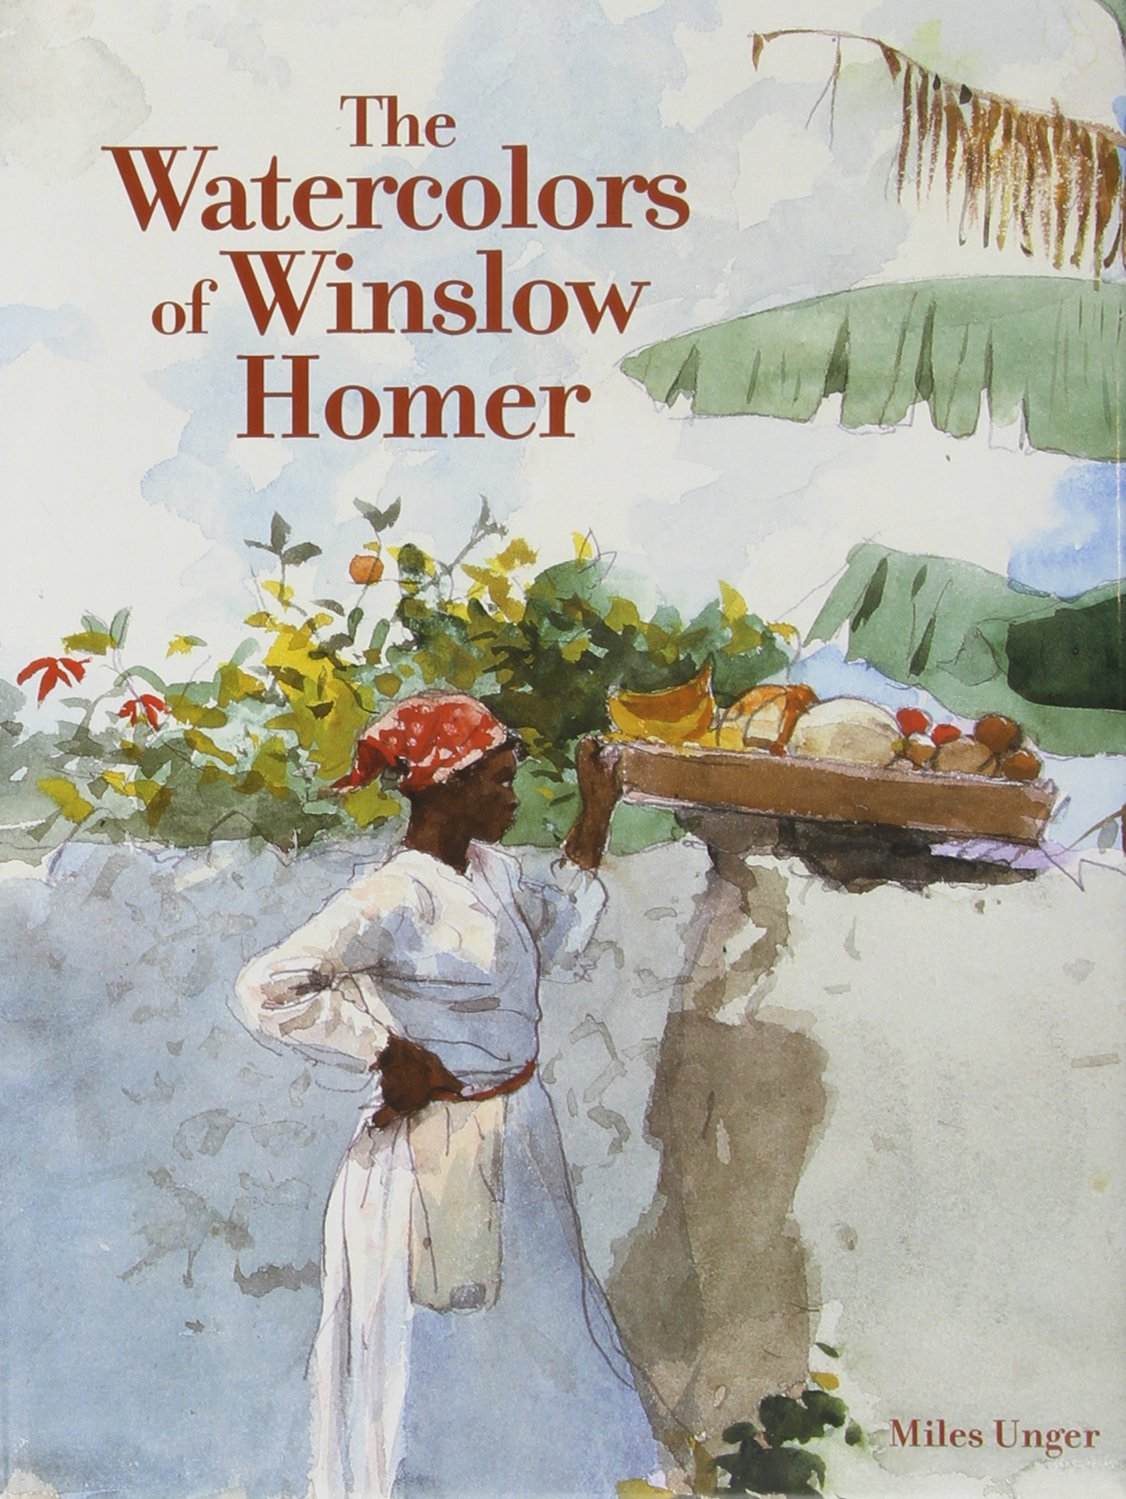 Watercolor books amazon - The Watercolors Of Winslow Homer Winslow Homer Miles Unger Arnold Skolnick 9780393020472 Amazon Com Books